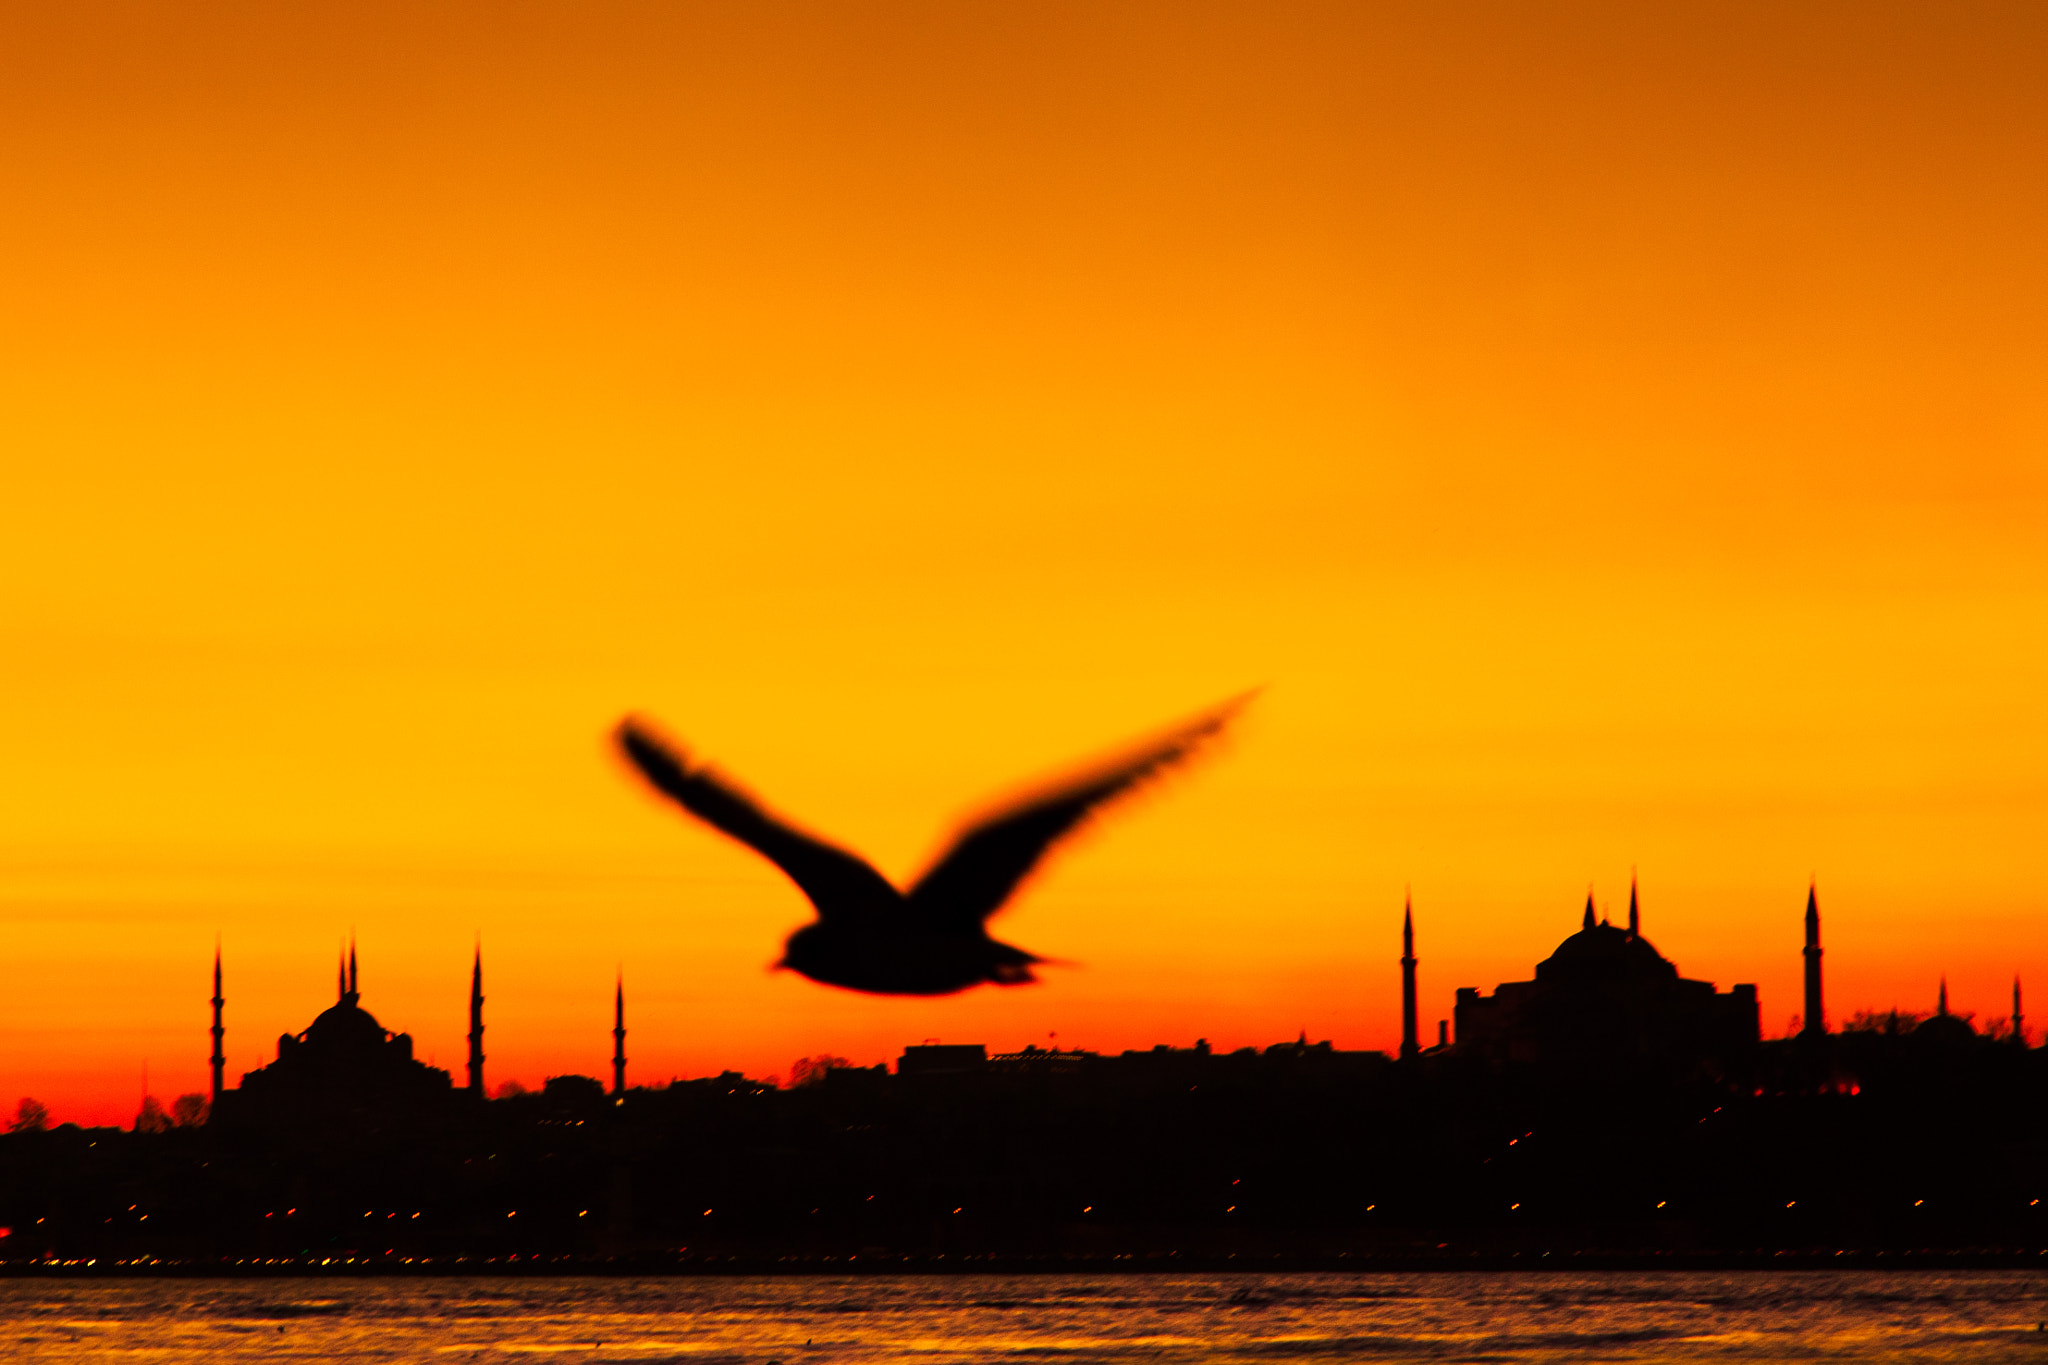 Photograph Old city and the seagull by Masis Usenmez on 500px